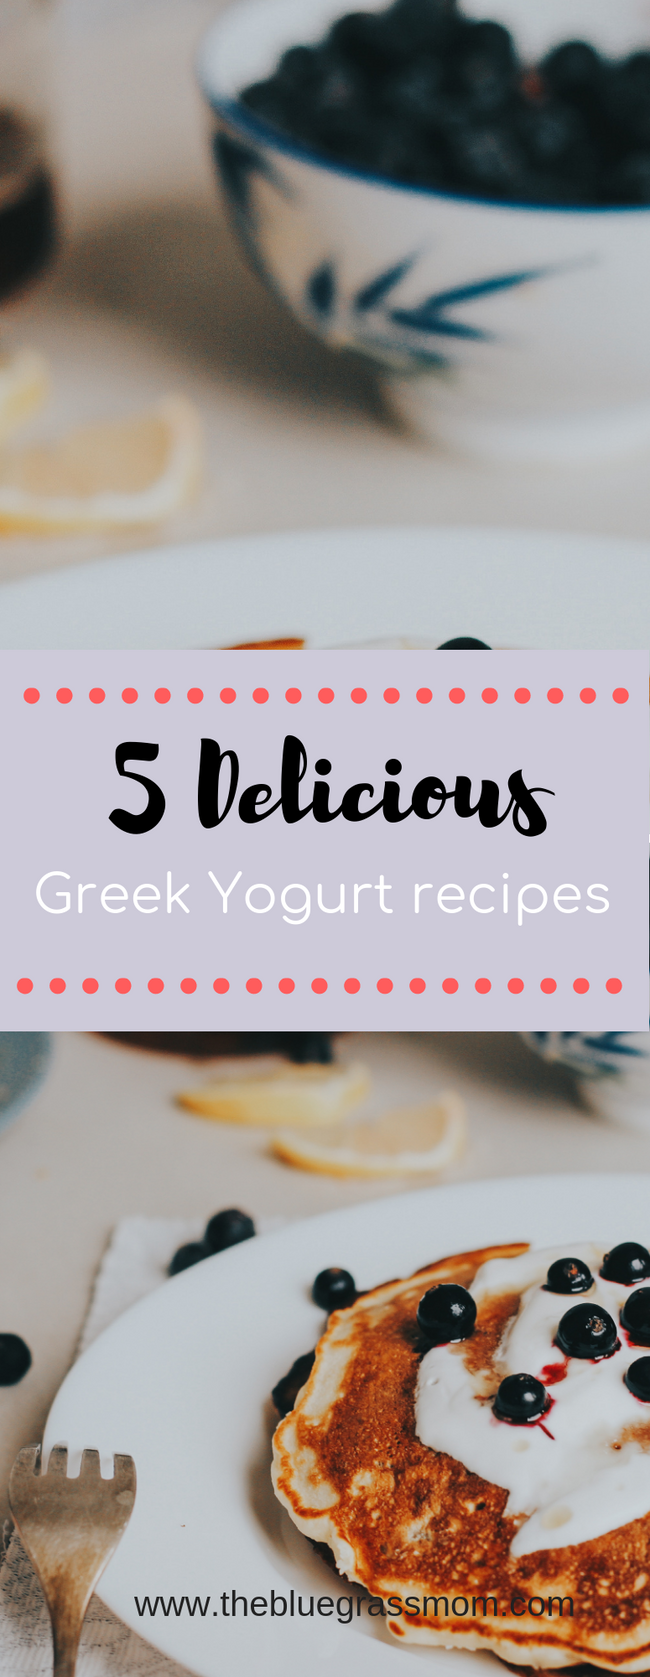 5 Healthy Recipes with Greek Yogurt.